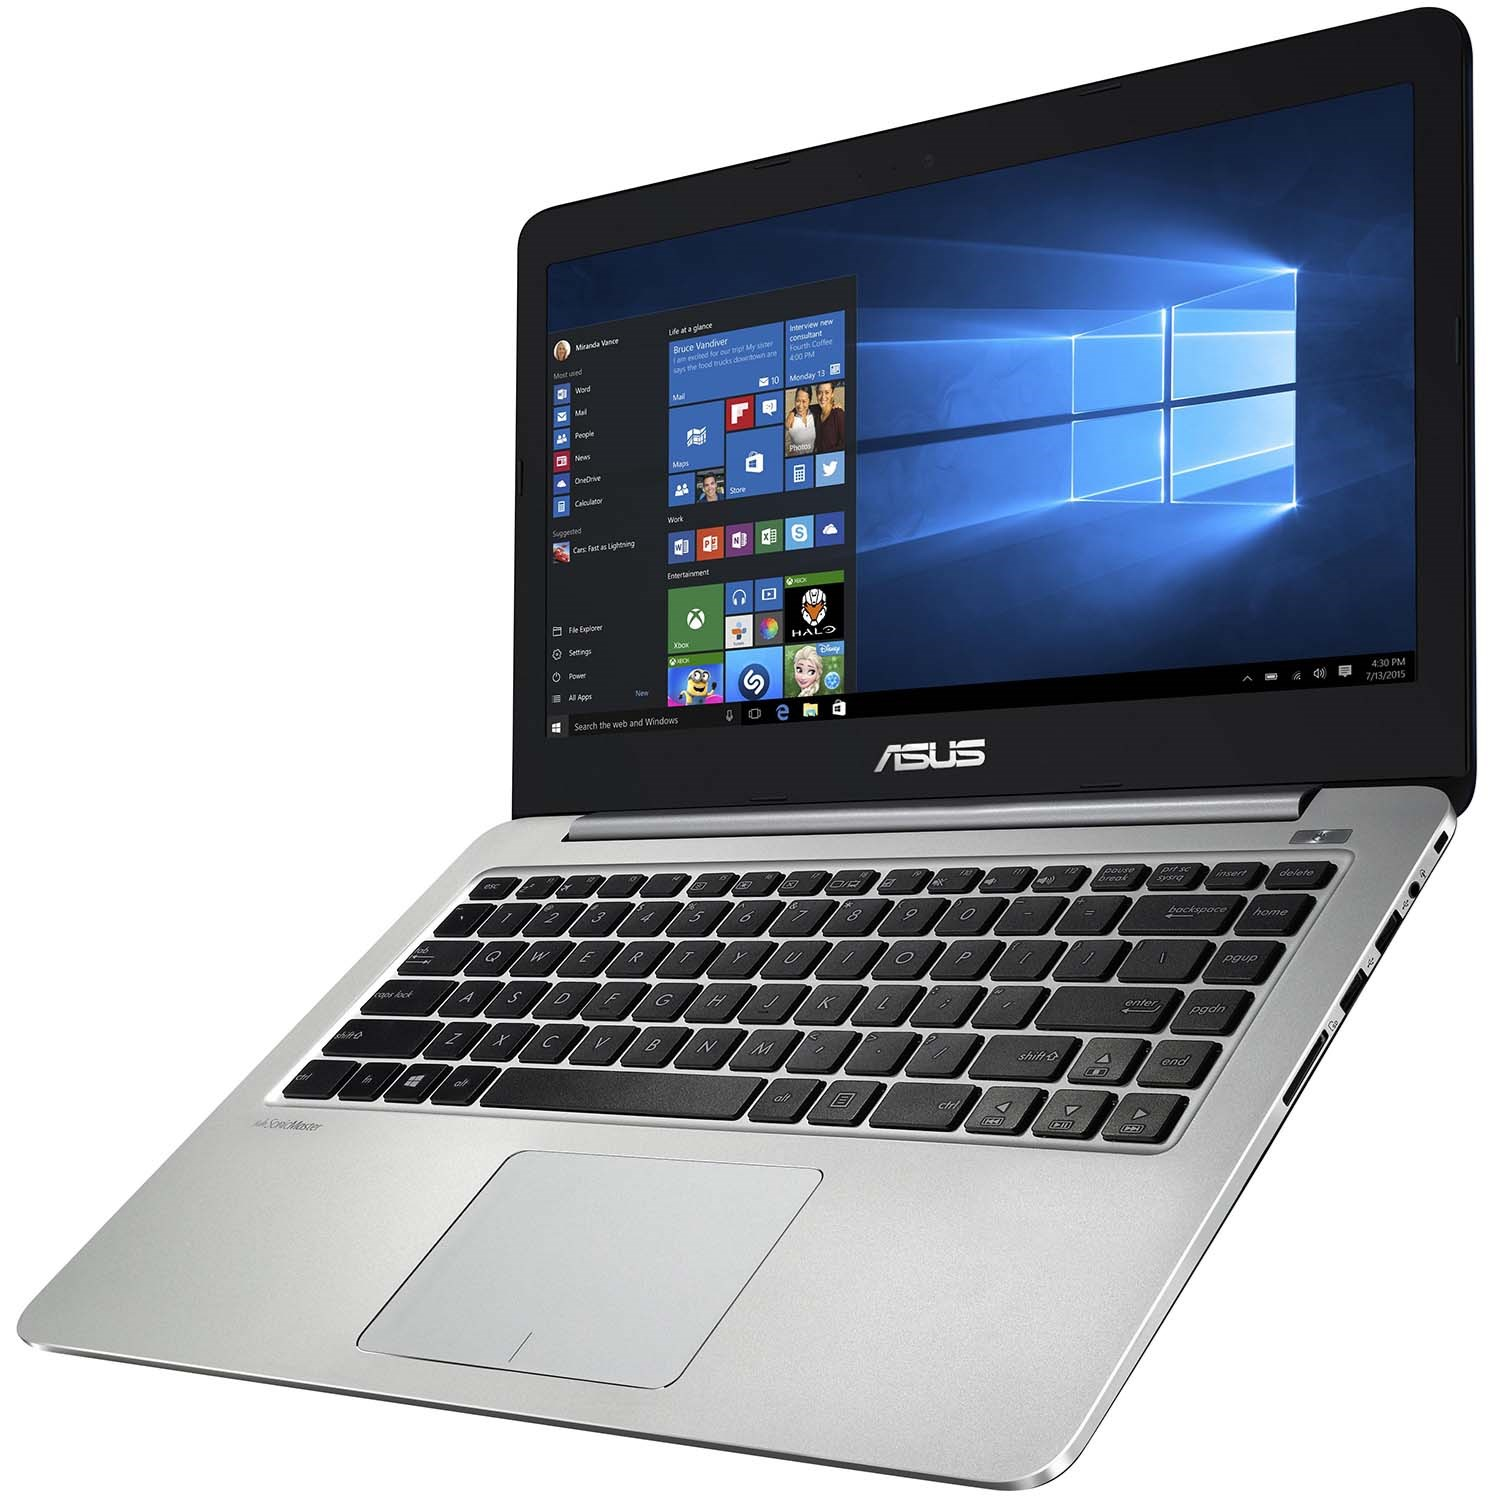 "Asus K401UQ-FA177D Core i5-7200U 4GB 750GB G940MX 14"" FreeDos"